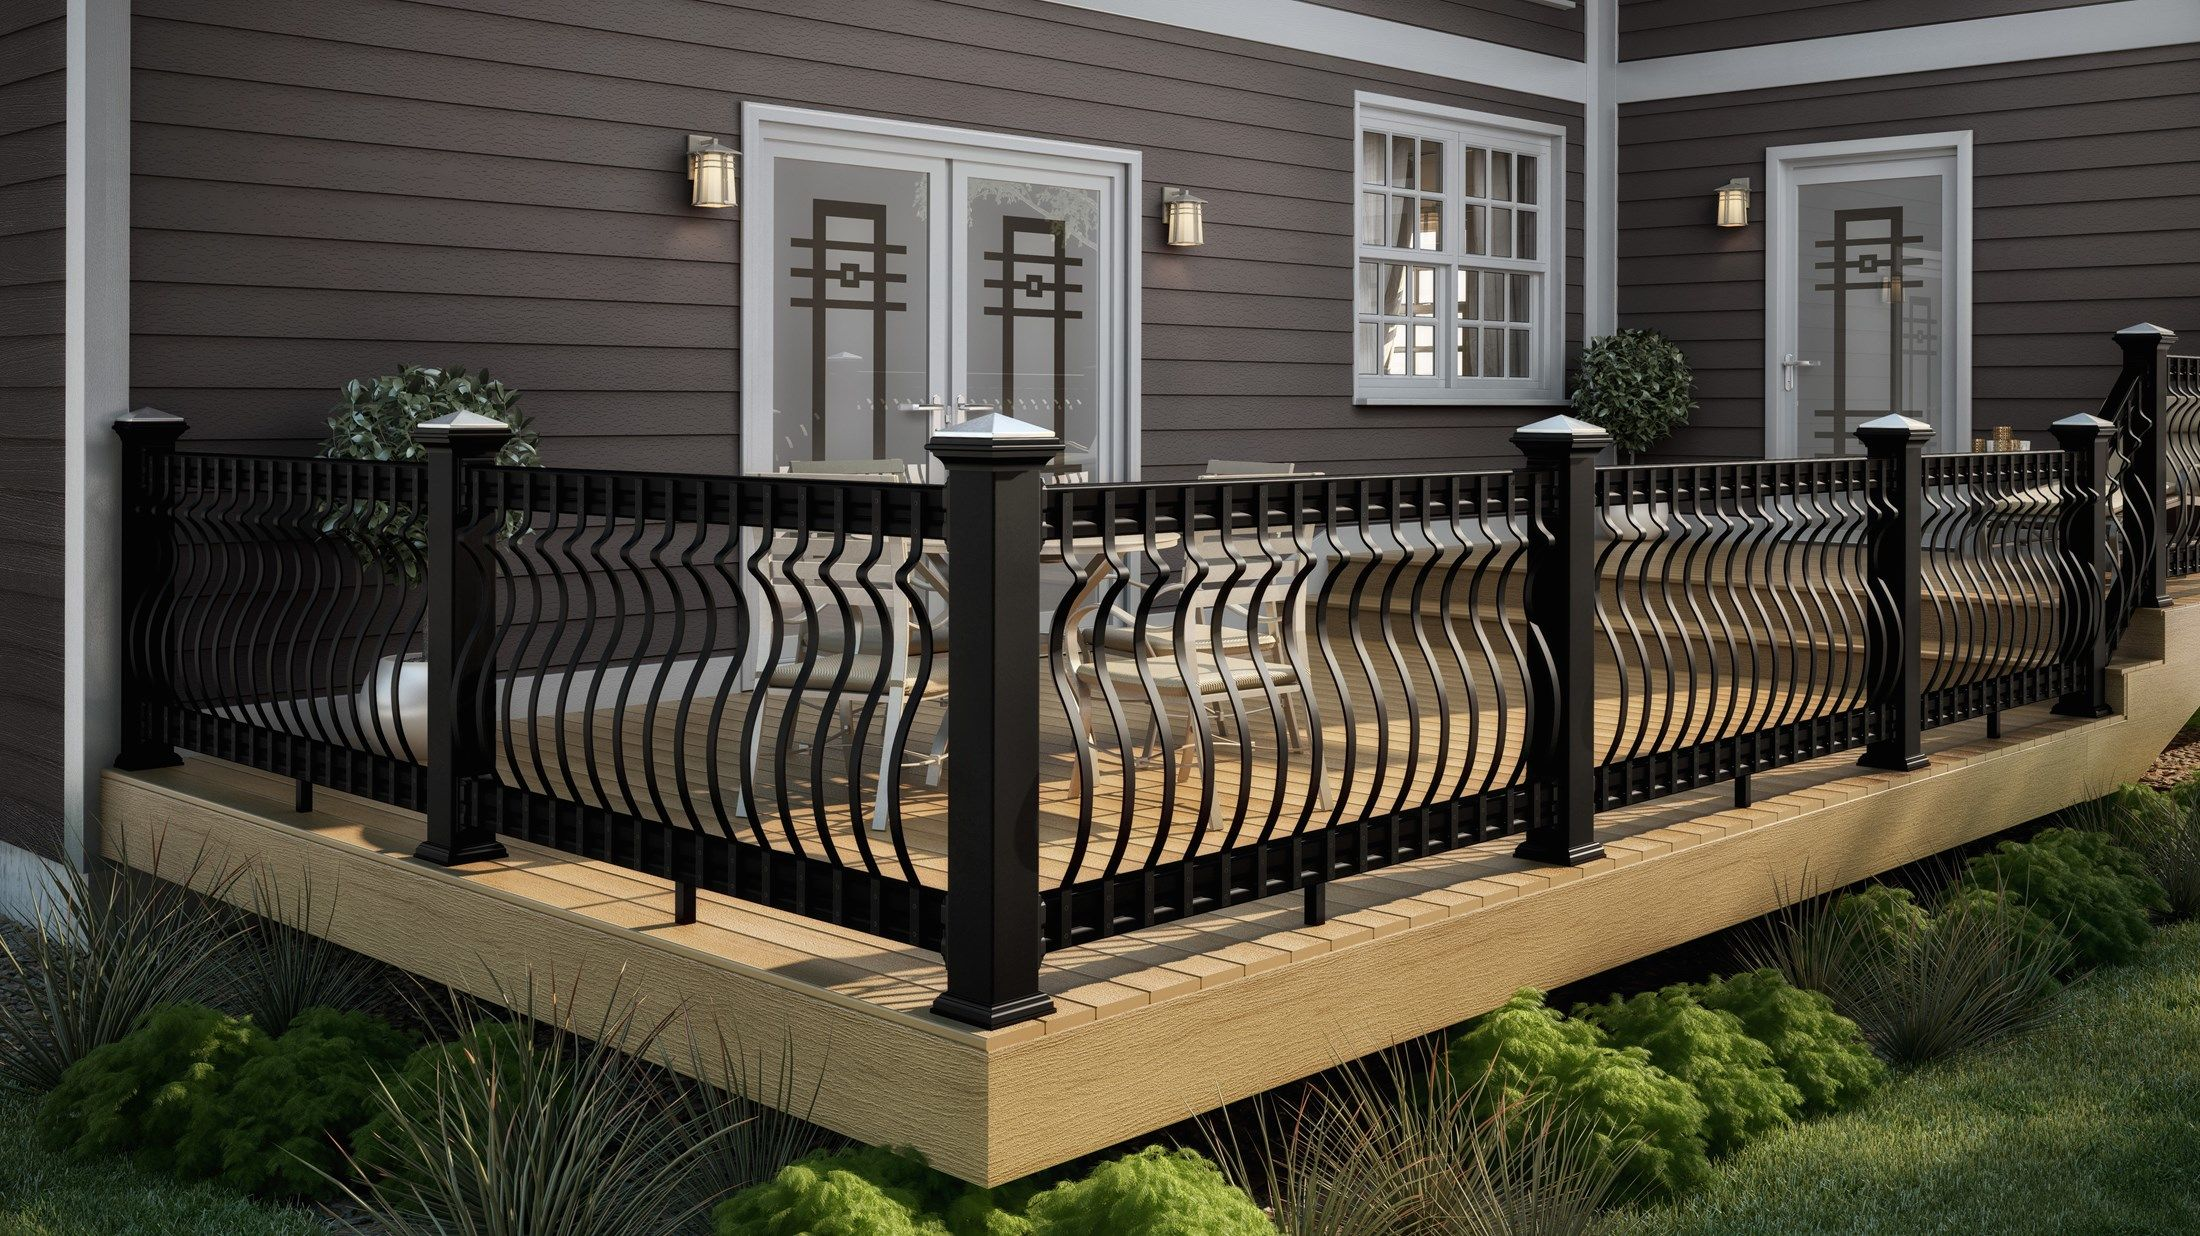 Deckorators Black CXT Architectural Railing